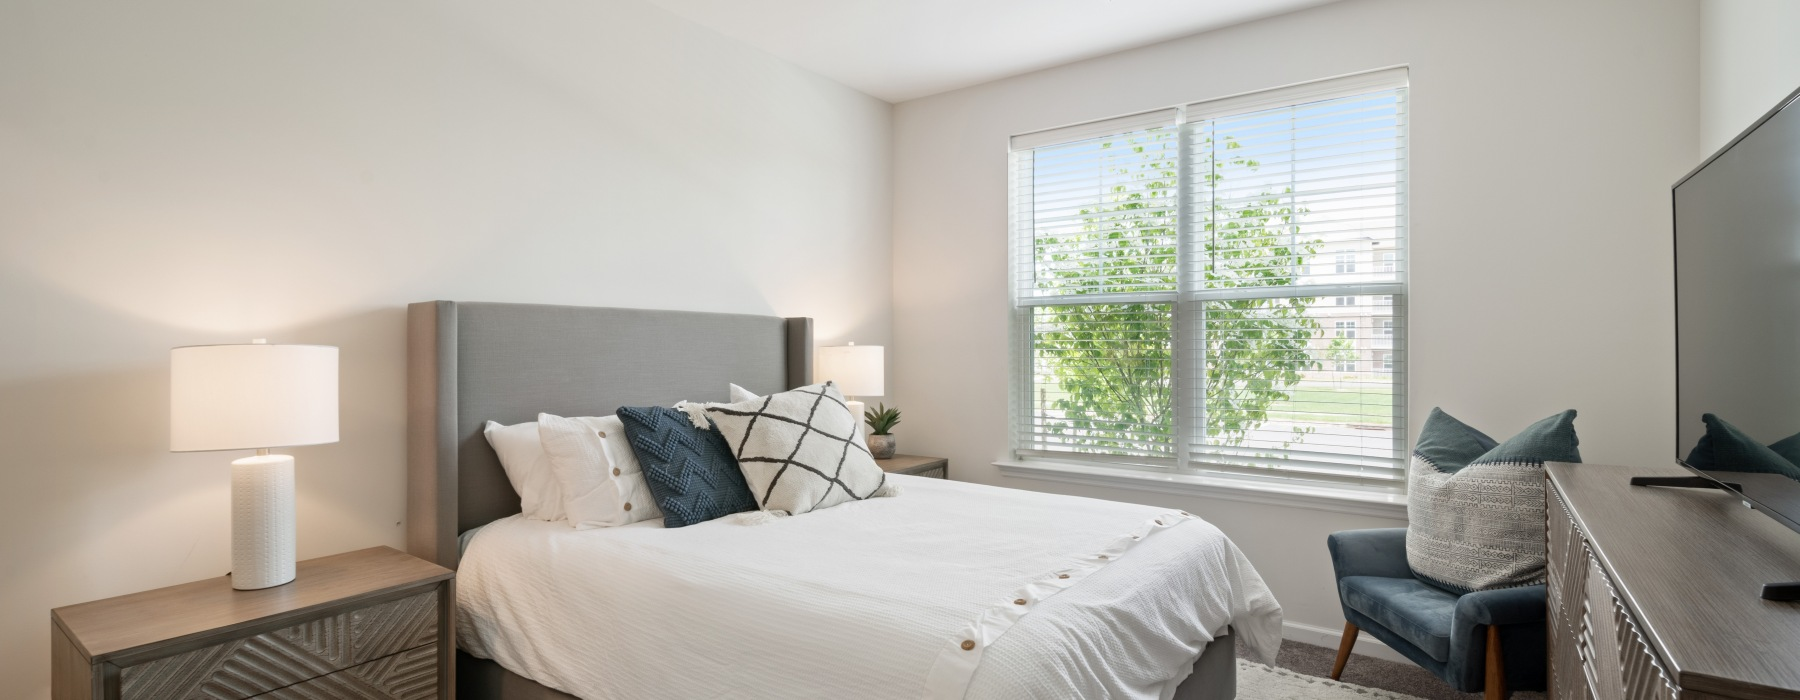 bedroom with large bed and side tables